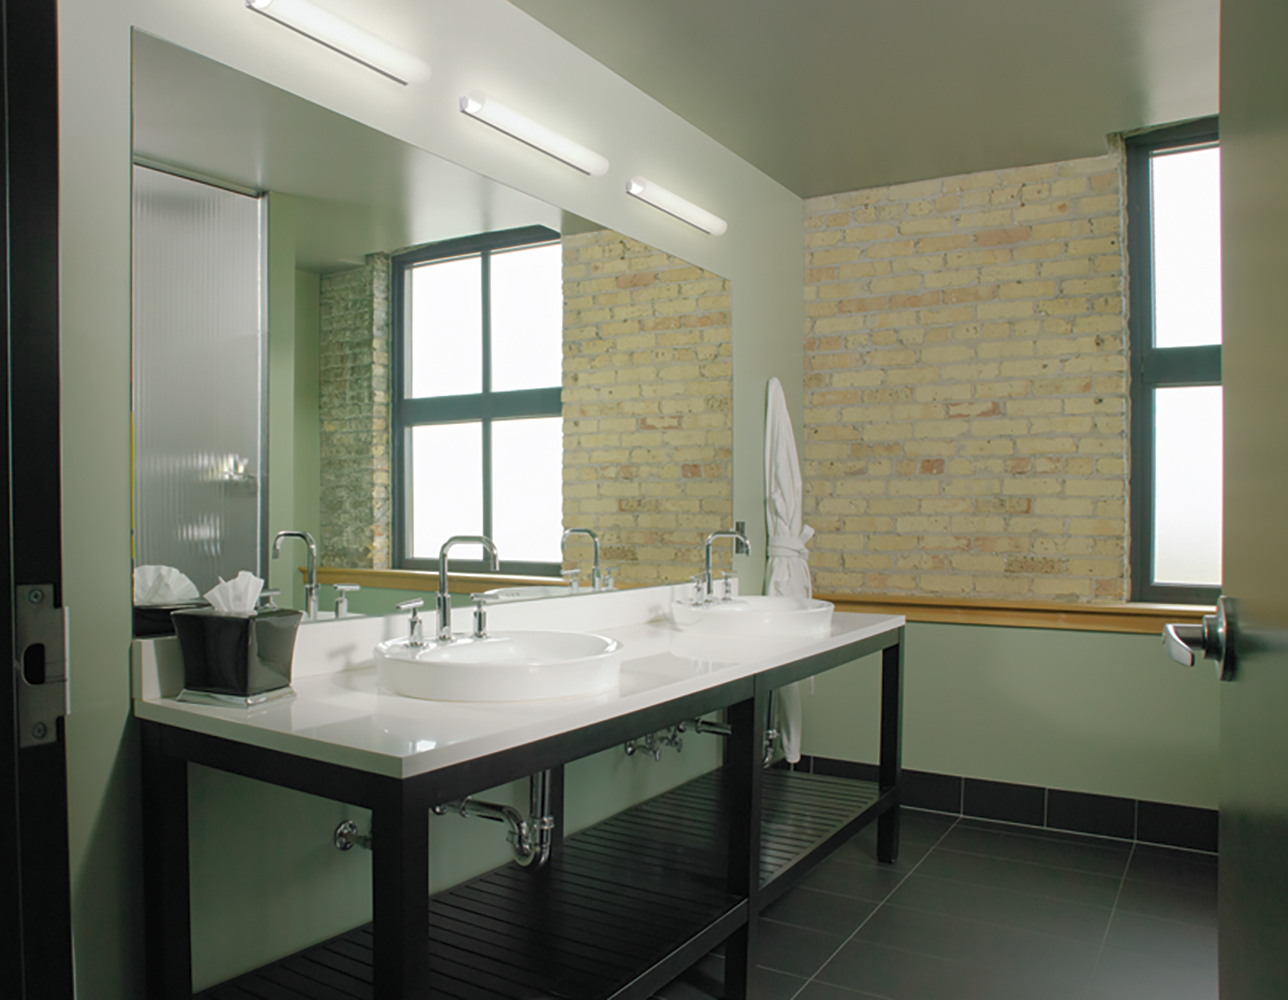 The Voila modern vanity light fixture, a luminous linear tube, above a clean mirror and double sink in a small bathroom.